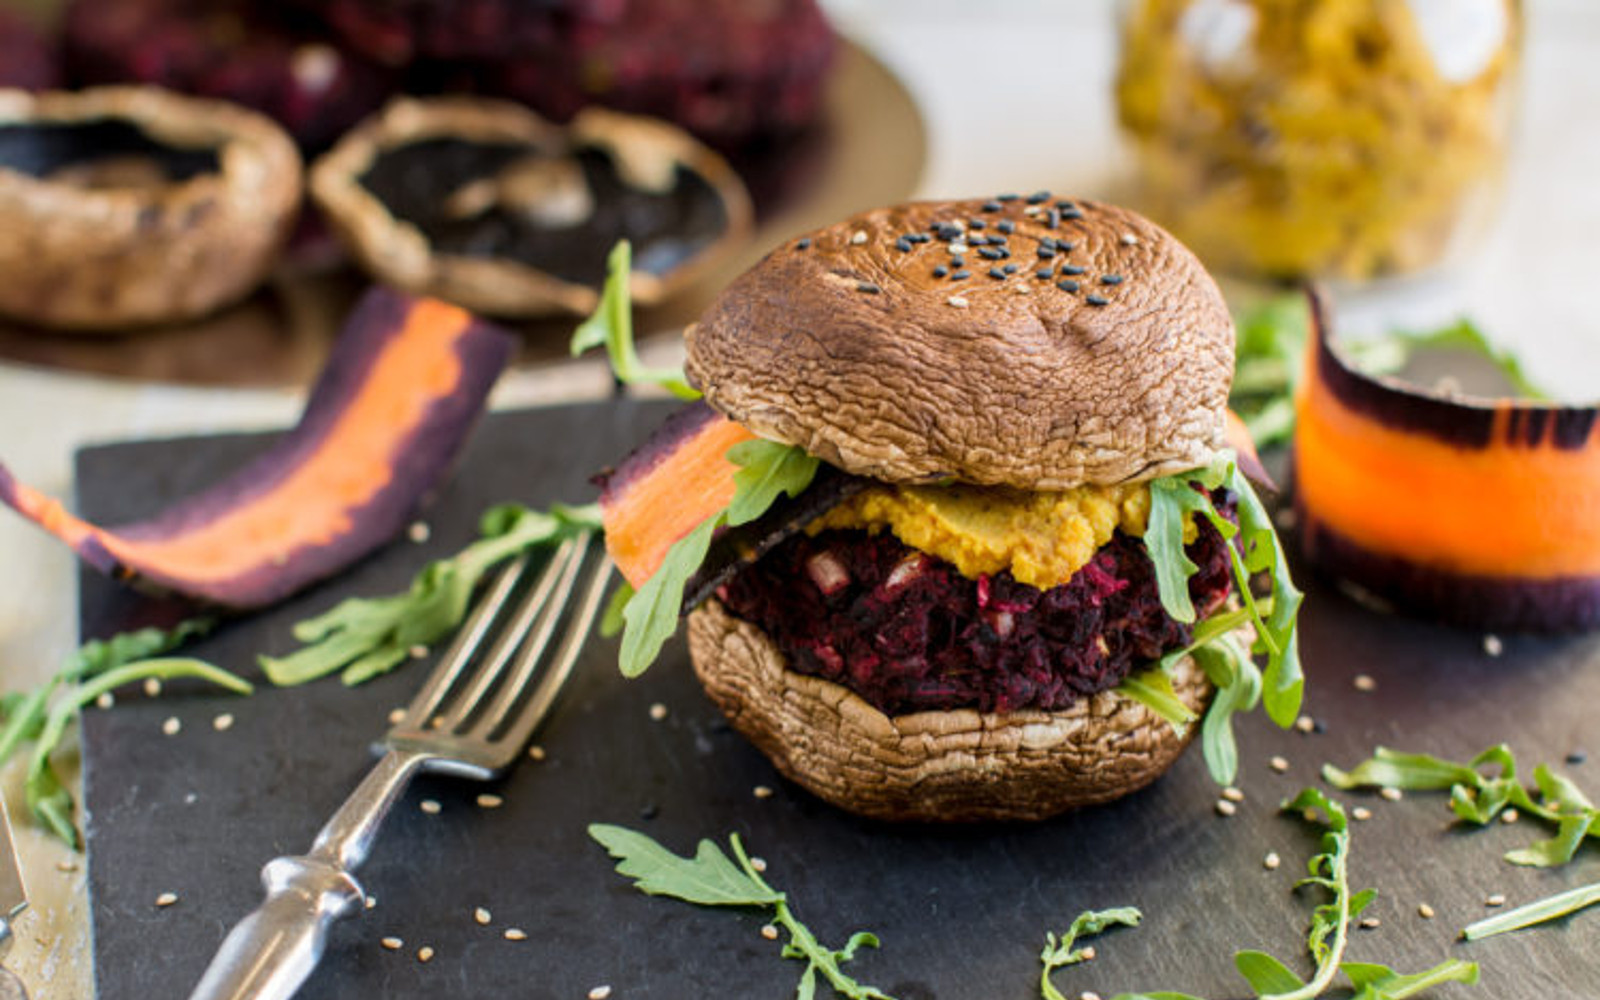 Grilled Portobello Burger With Black Bean Beet Patty